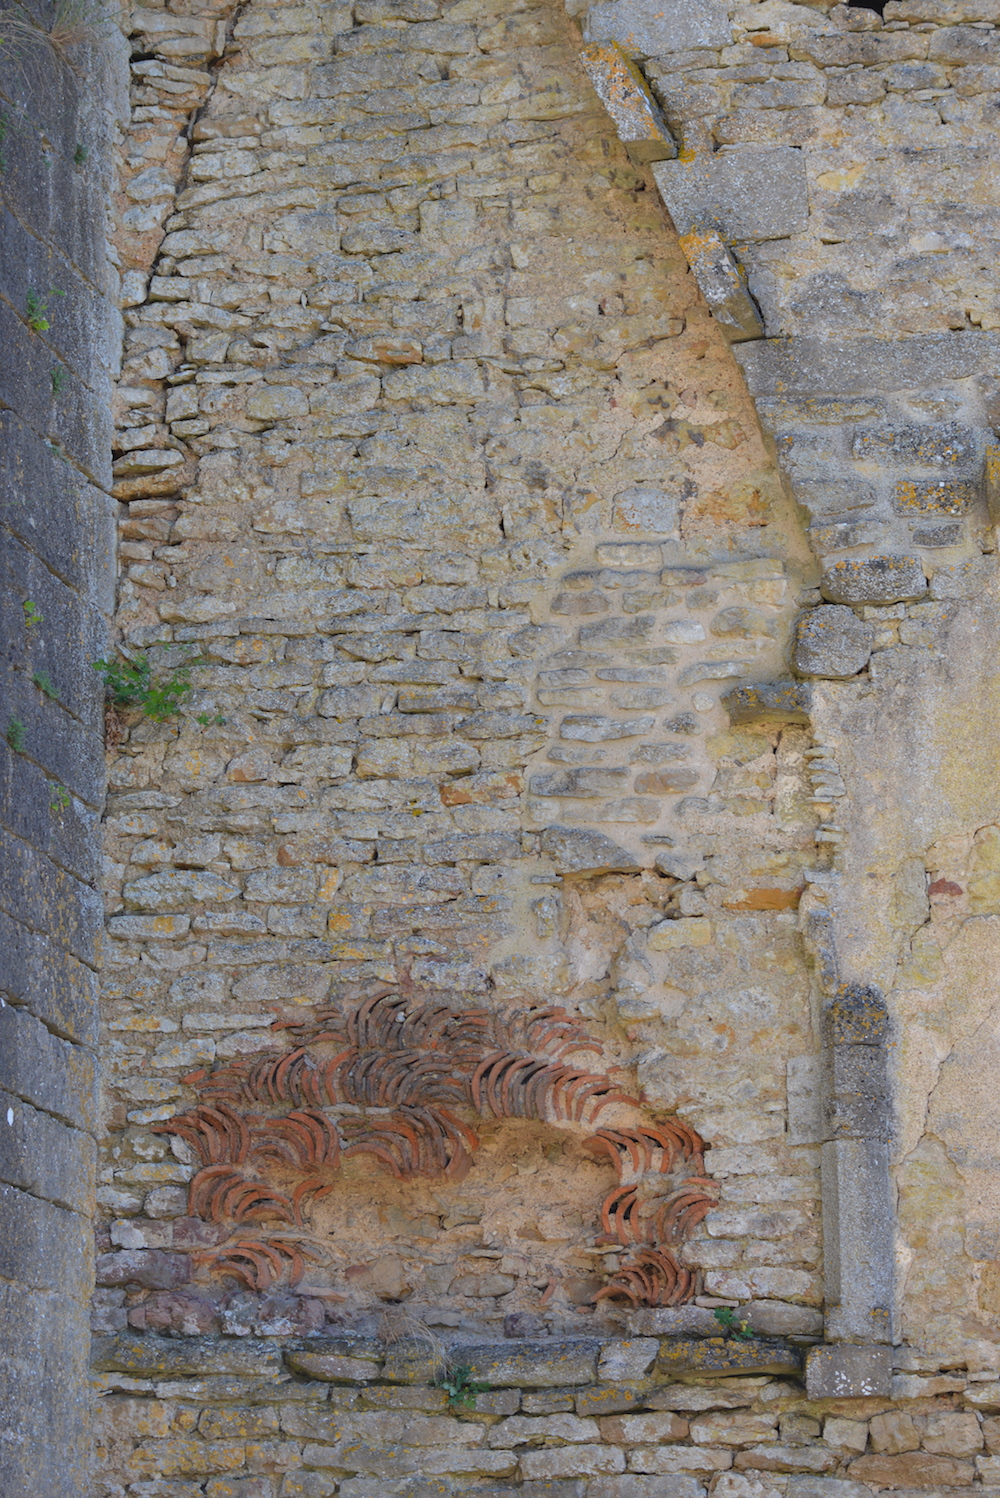 Roman tiles form the fireback of this chimney at first floor level.